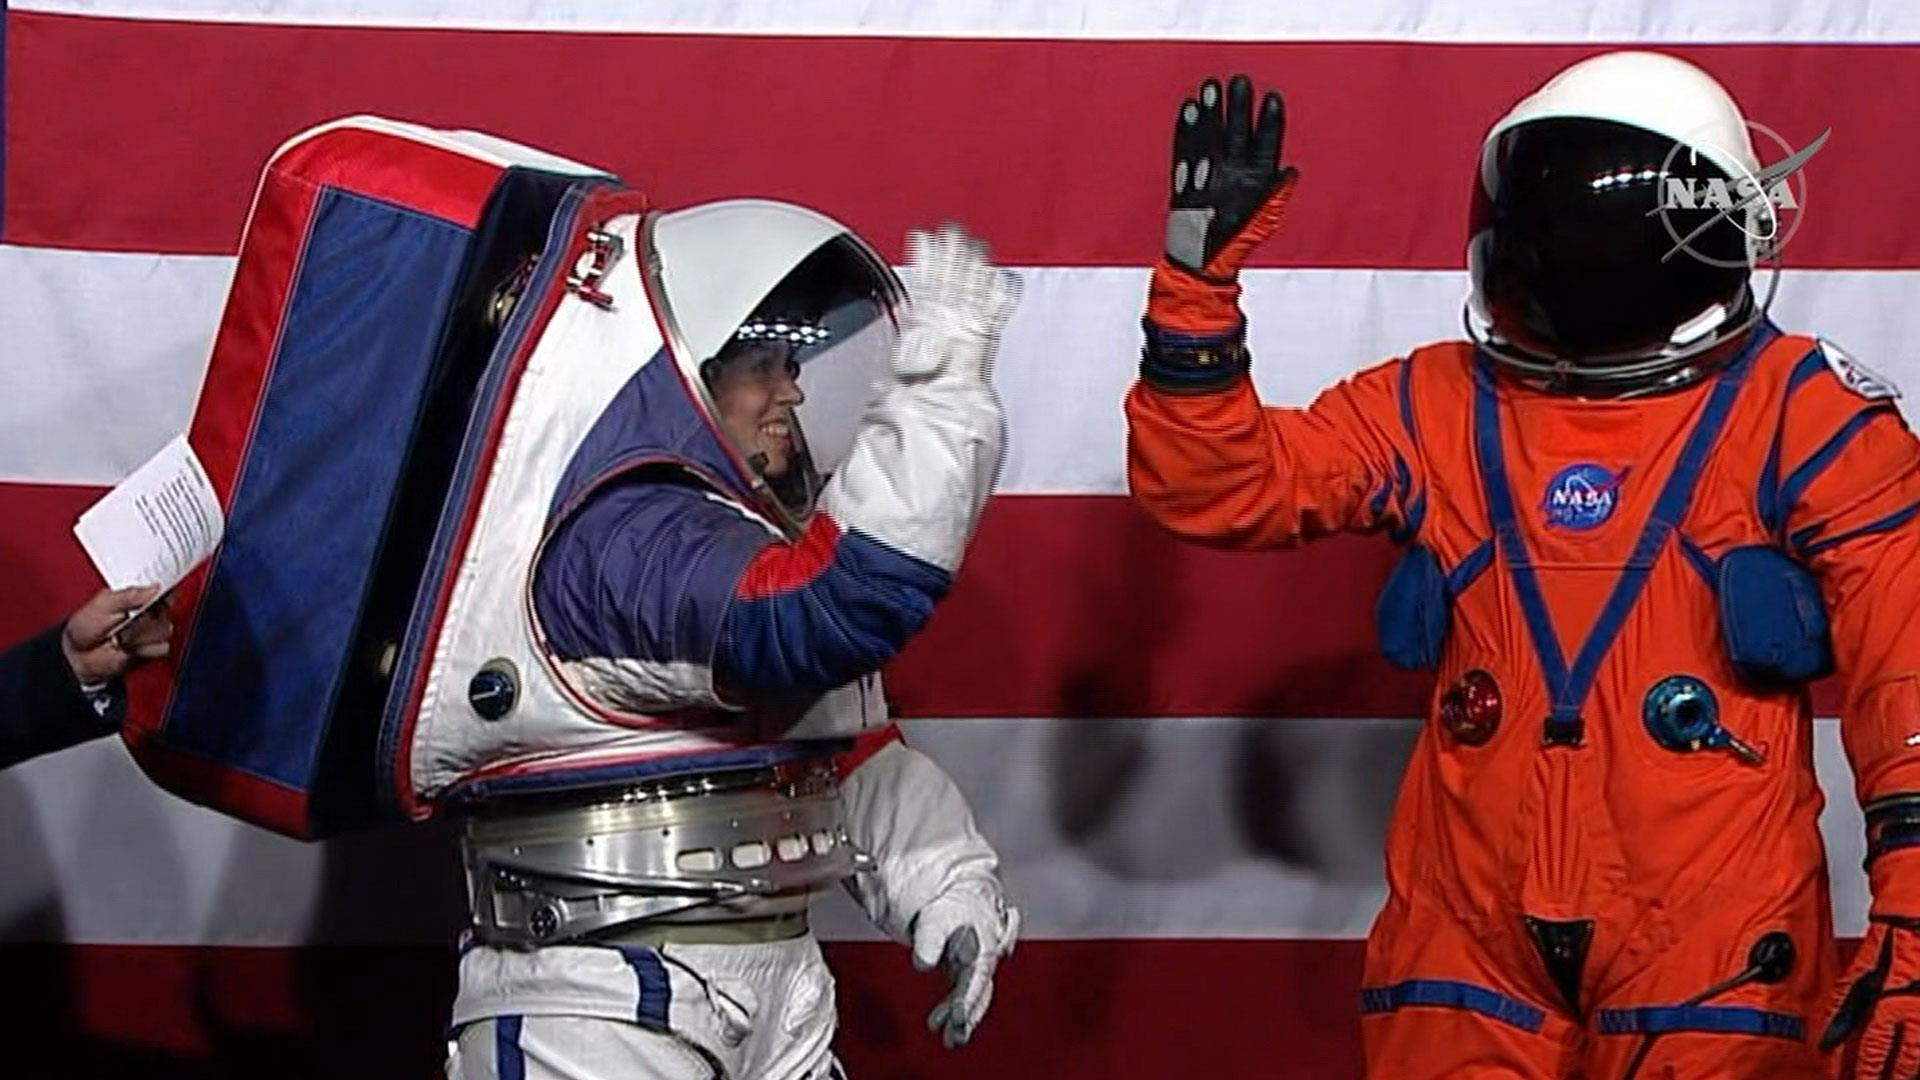 NASA unveils new spacesuits astronauts will wear on the moon, Mars